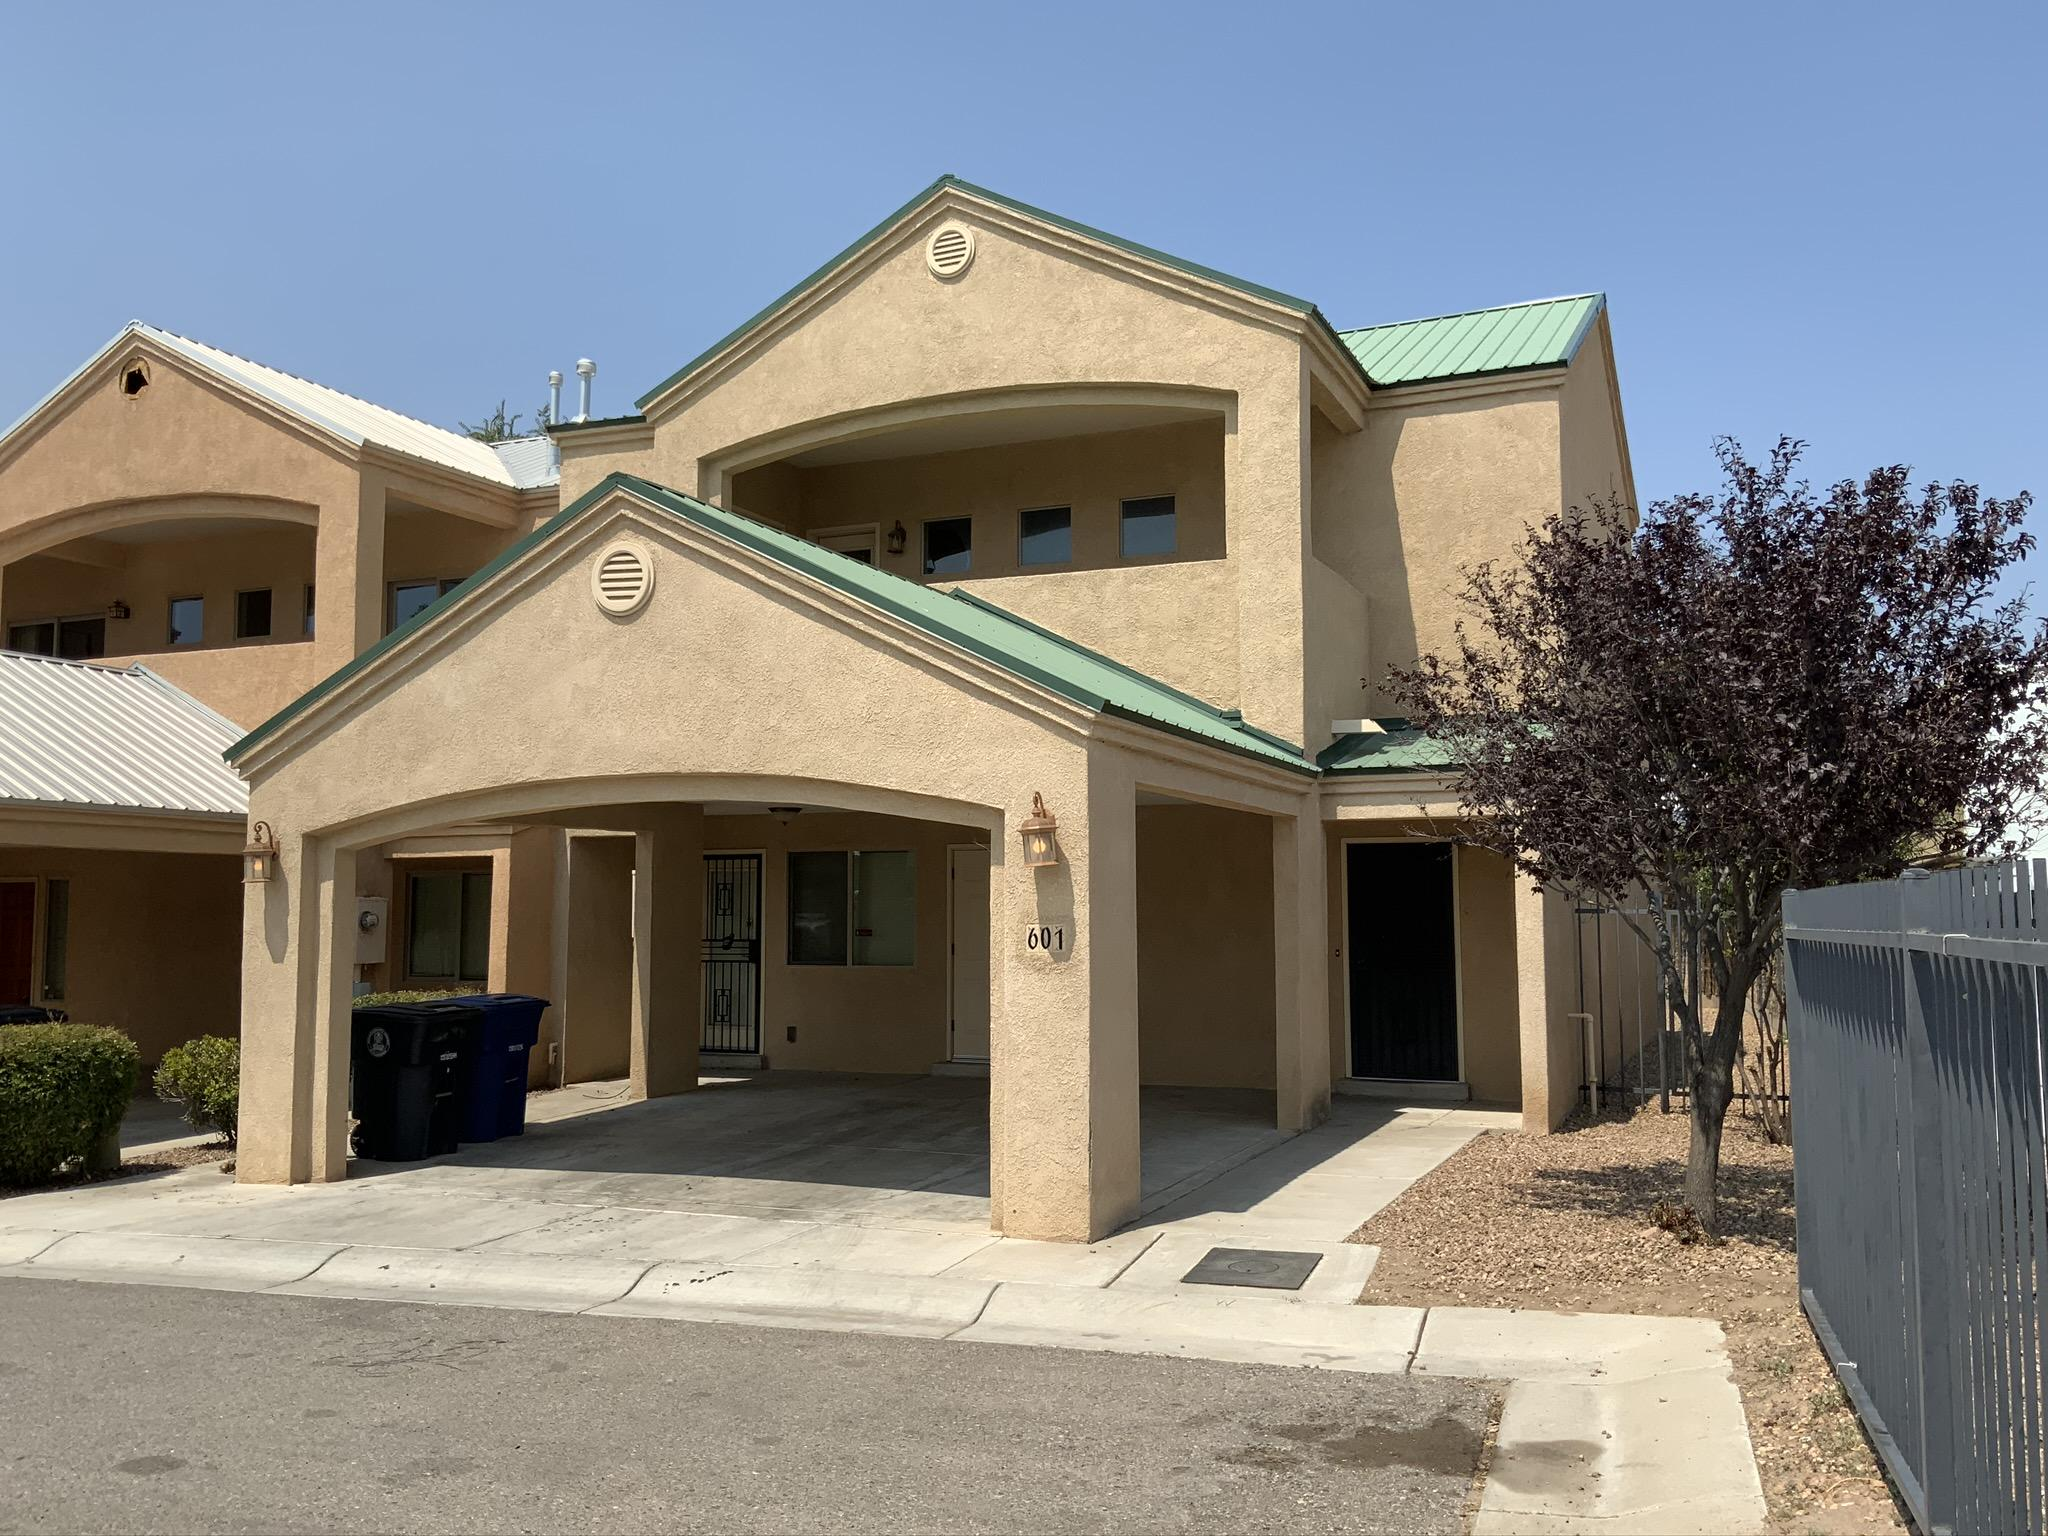 Custom town home near Barelas coffee house and Indian Cultural Center! This upgraded and custom built town home features a metal roof, 2 car carport, storage closets, granite counters, new carpet, refrigerated air, custom solid wood doors, private sinks in each bedroom, large walk out patio with views and a private yard fenced with custom coyote wood planks. Priced to sell quickly.